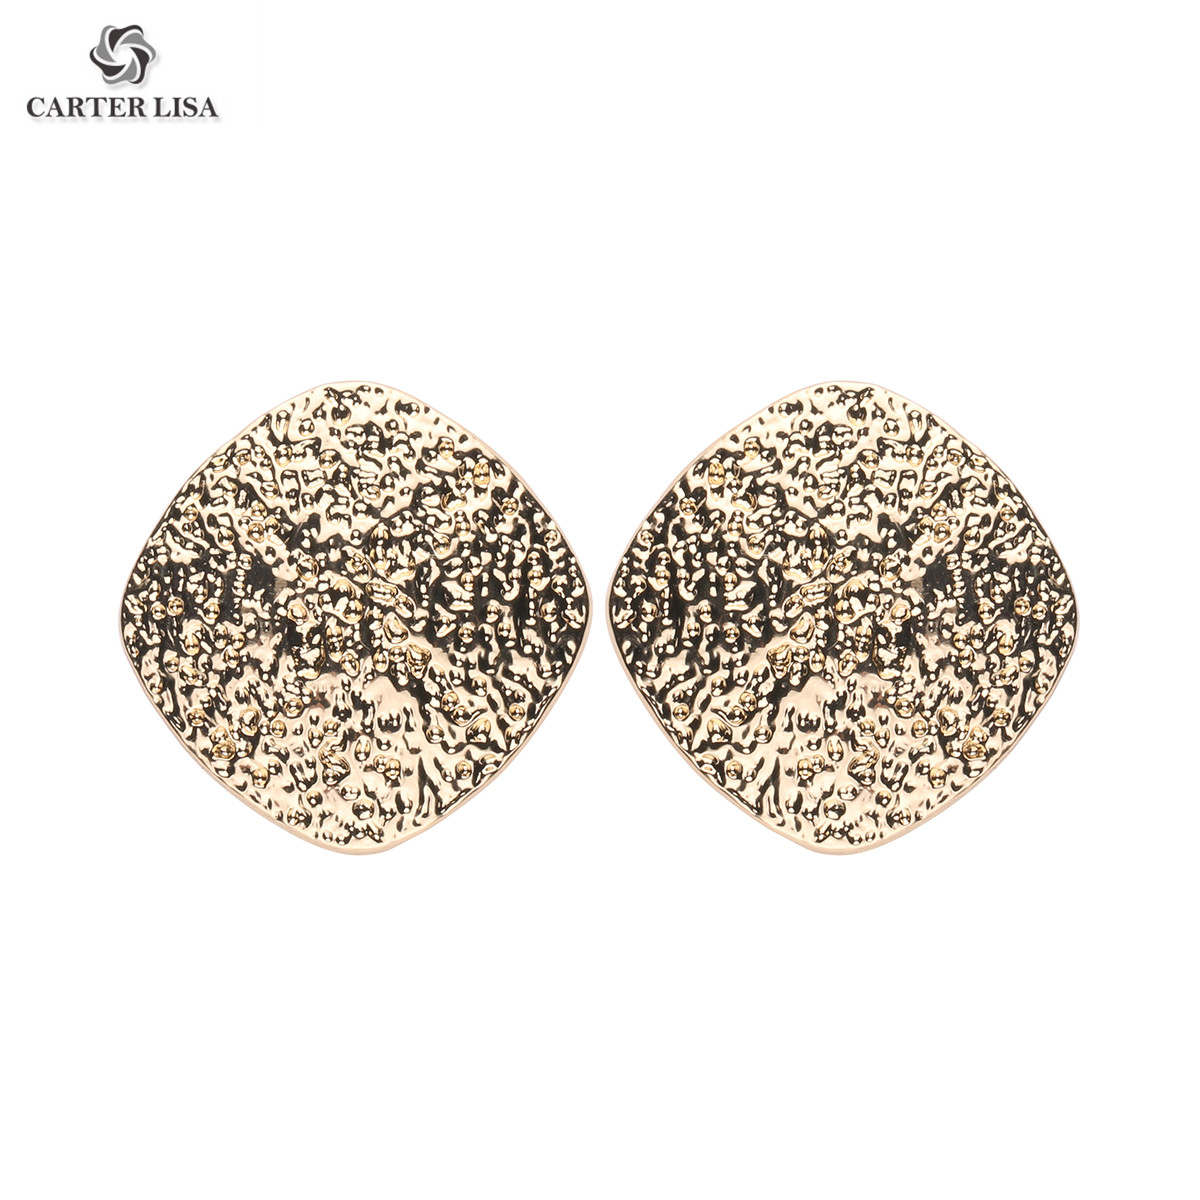 CARTER LISA Chic Metallic Earrings Jewelry Charm New Geometric Square Shiny Glitter Minimalist Earring Women Sales